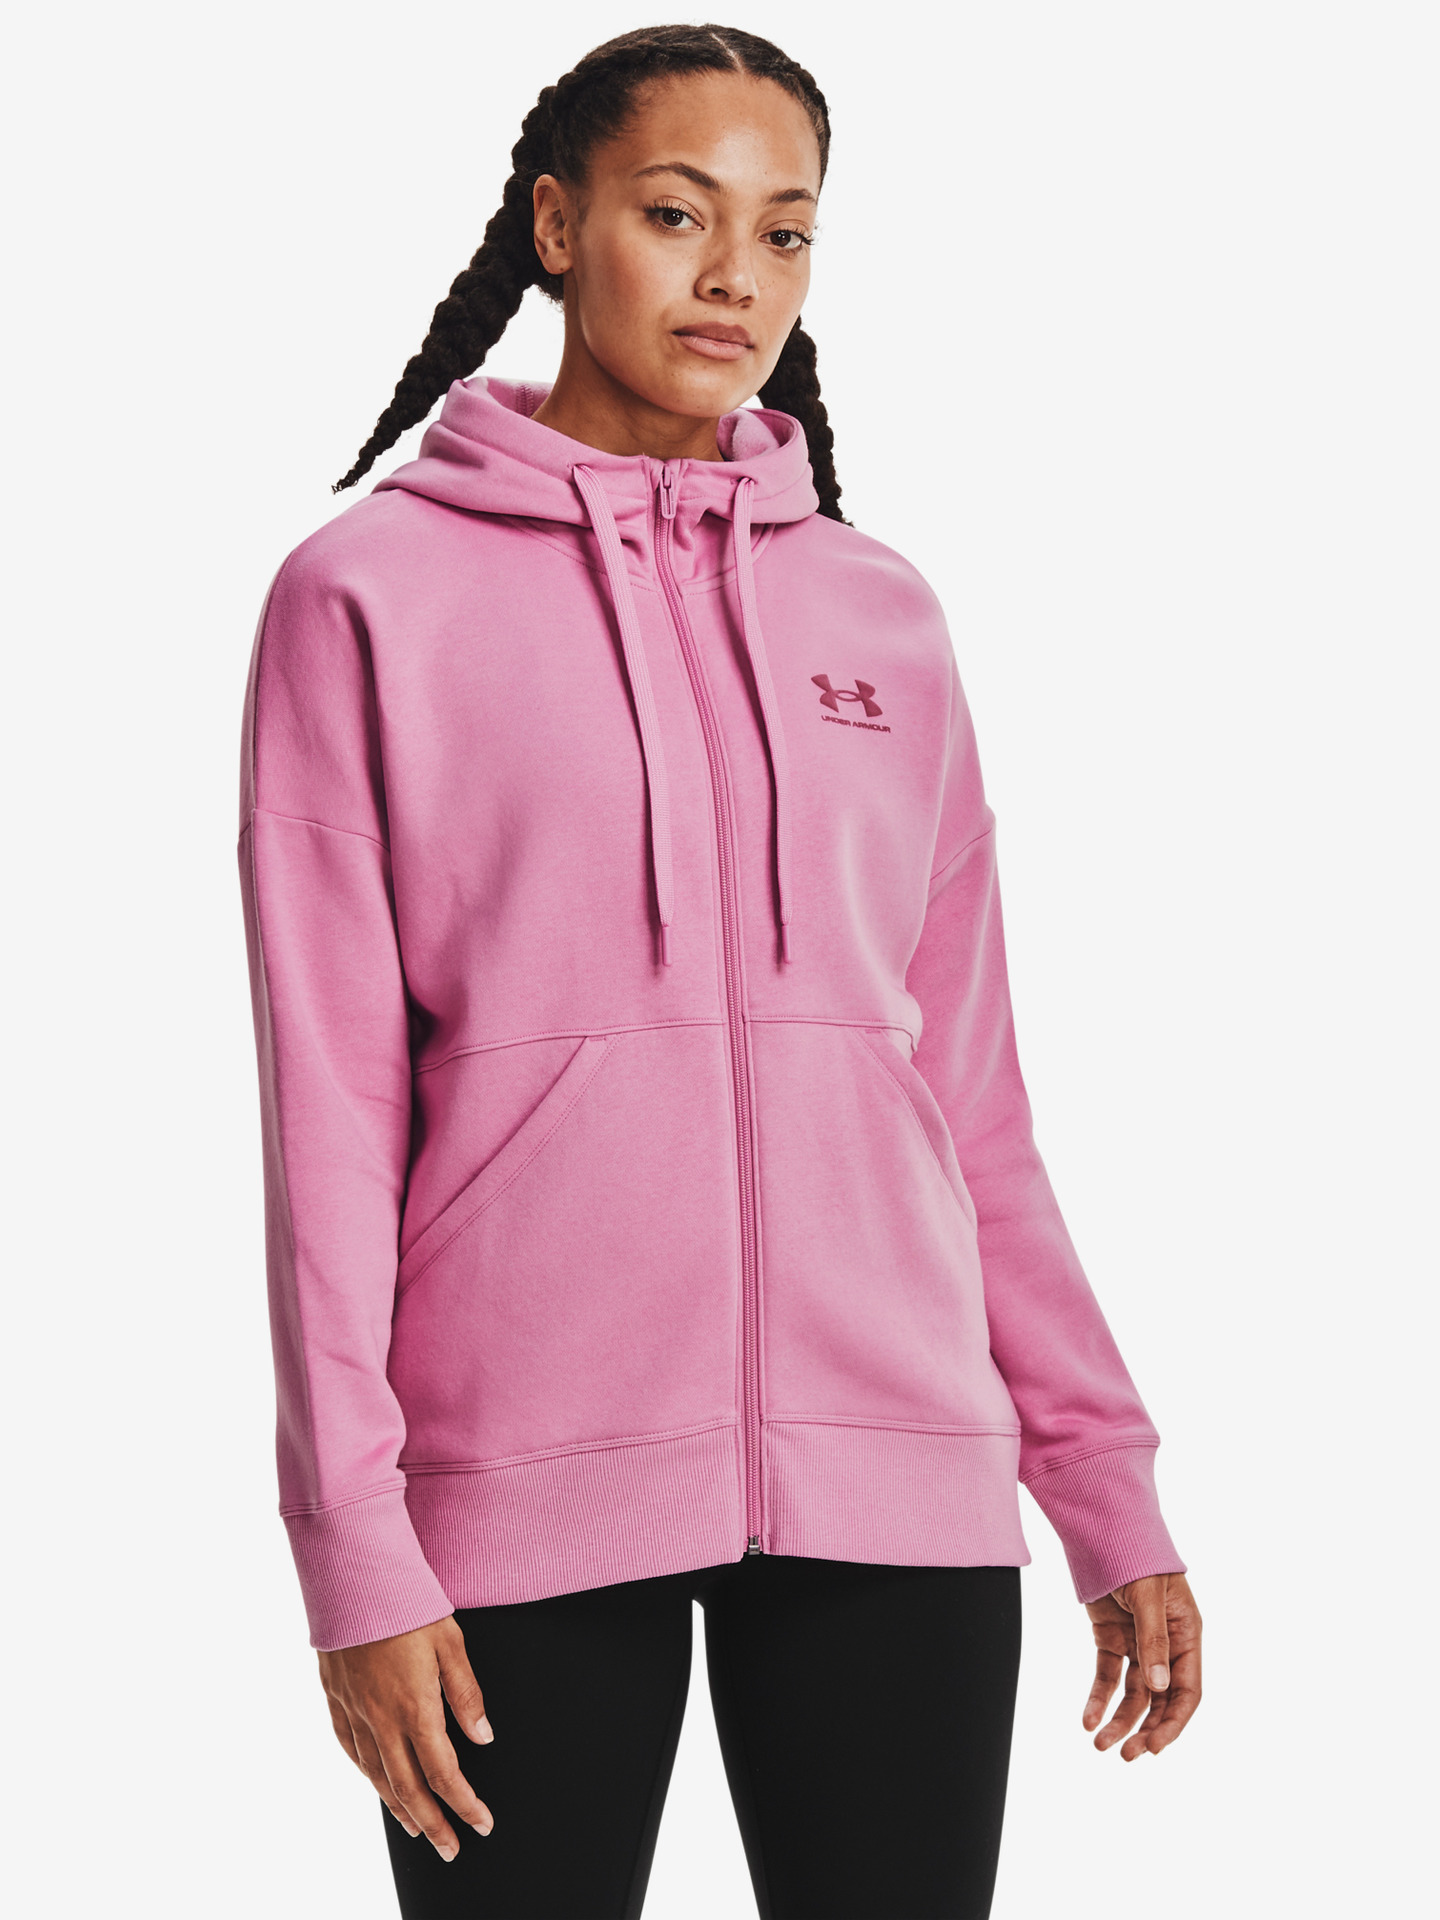 Rival Fleece Full Zip Mikina Under Armour Růžová